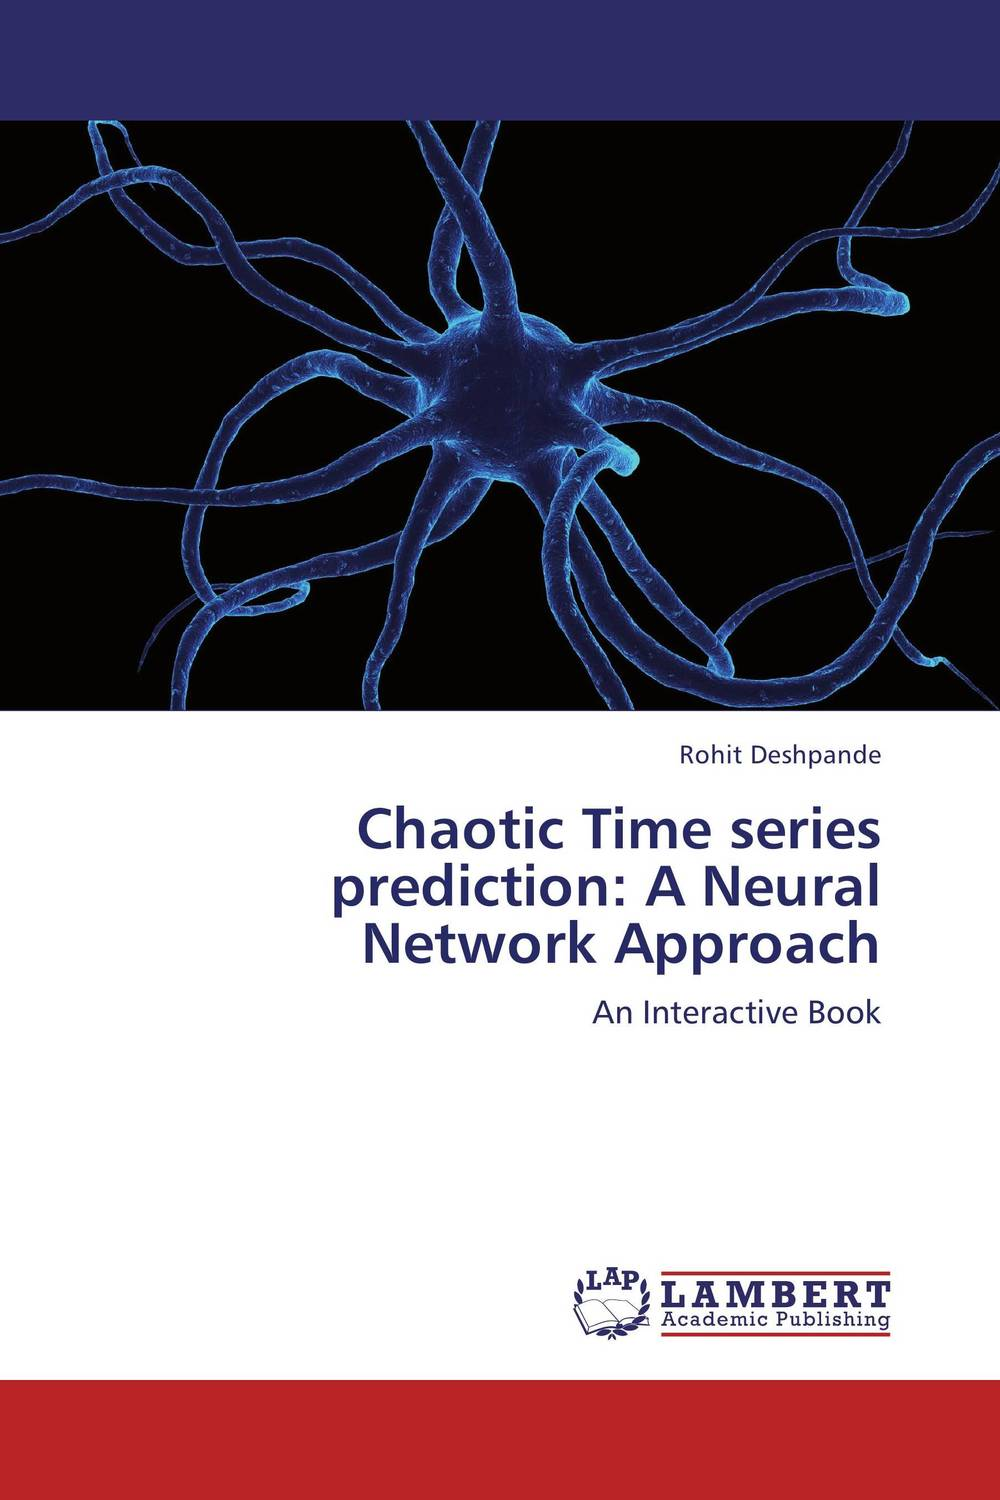 Chaotic Time series prediction: A Neural Network Approach prediction